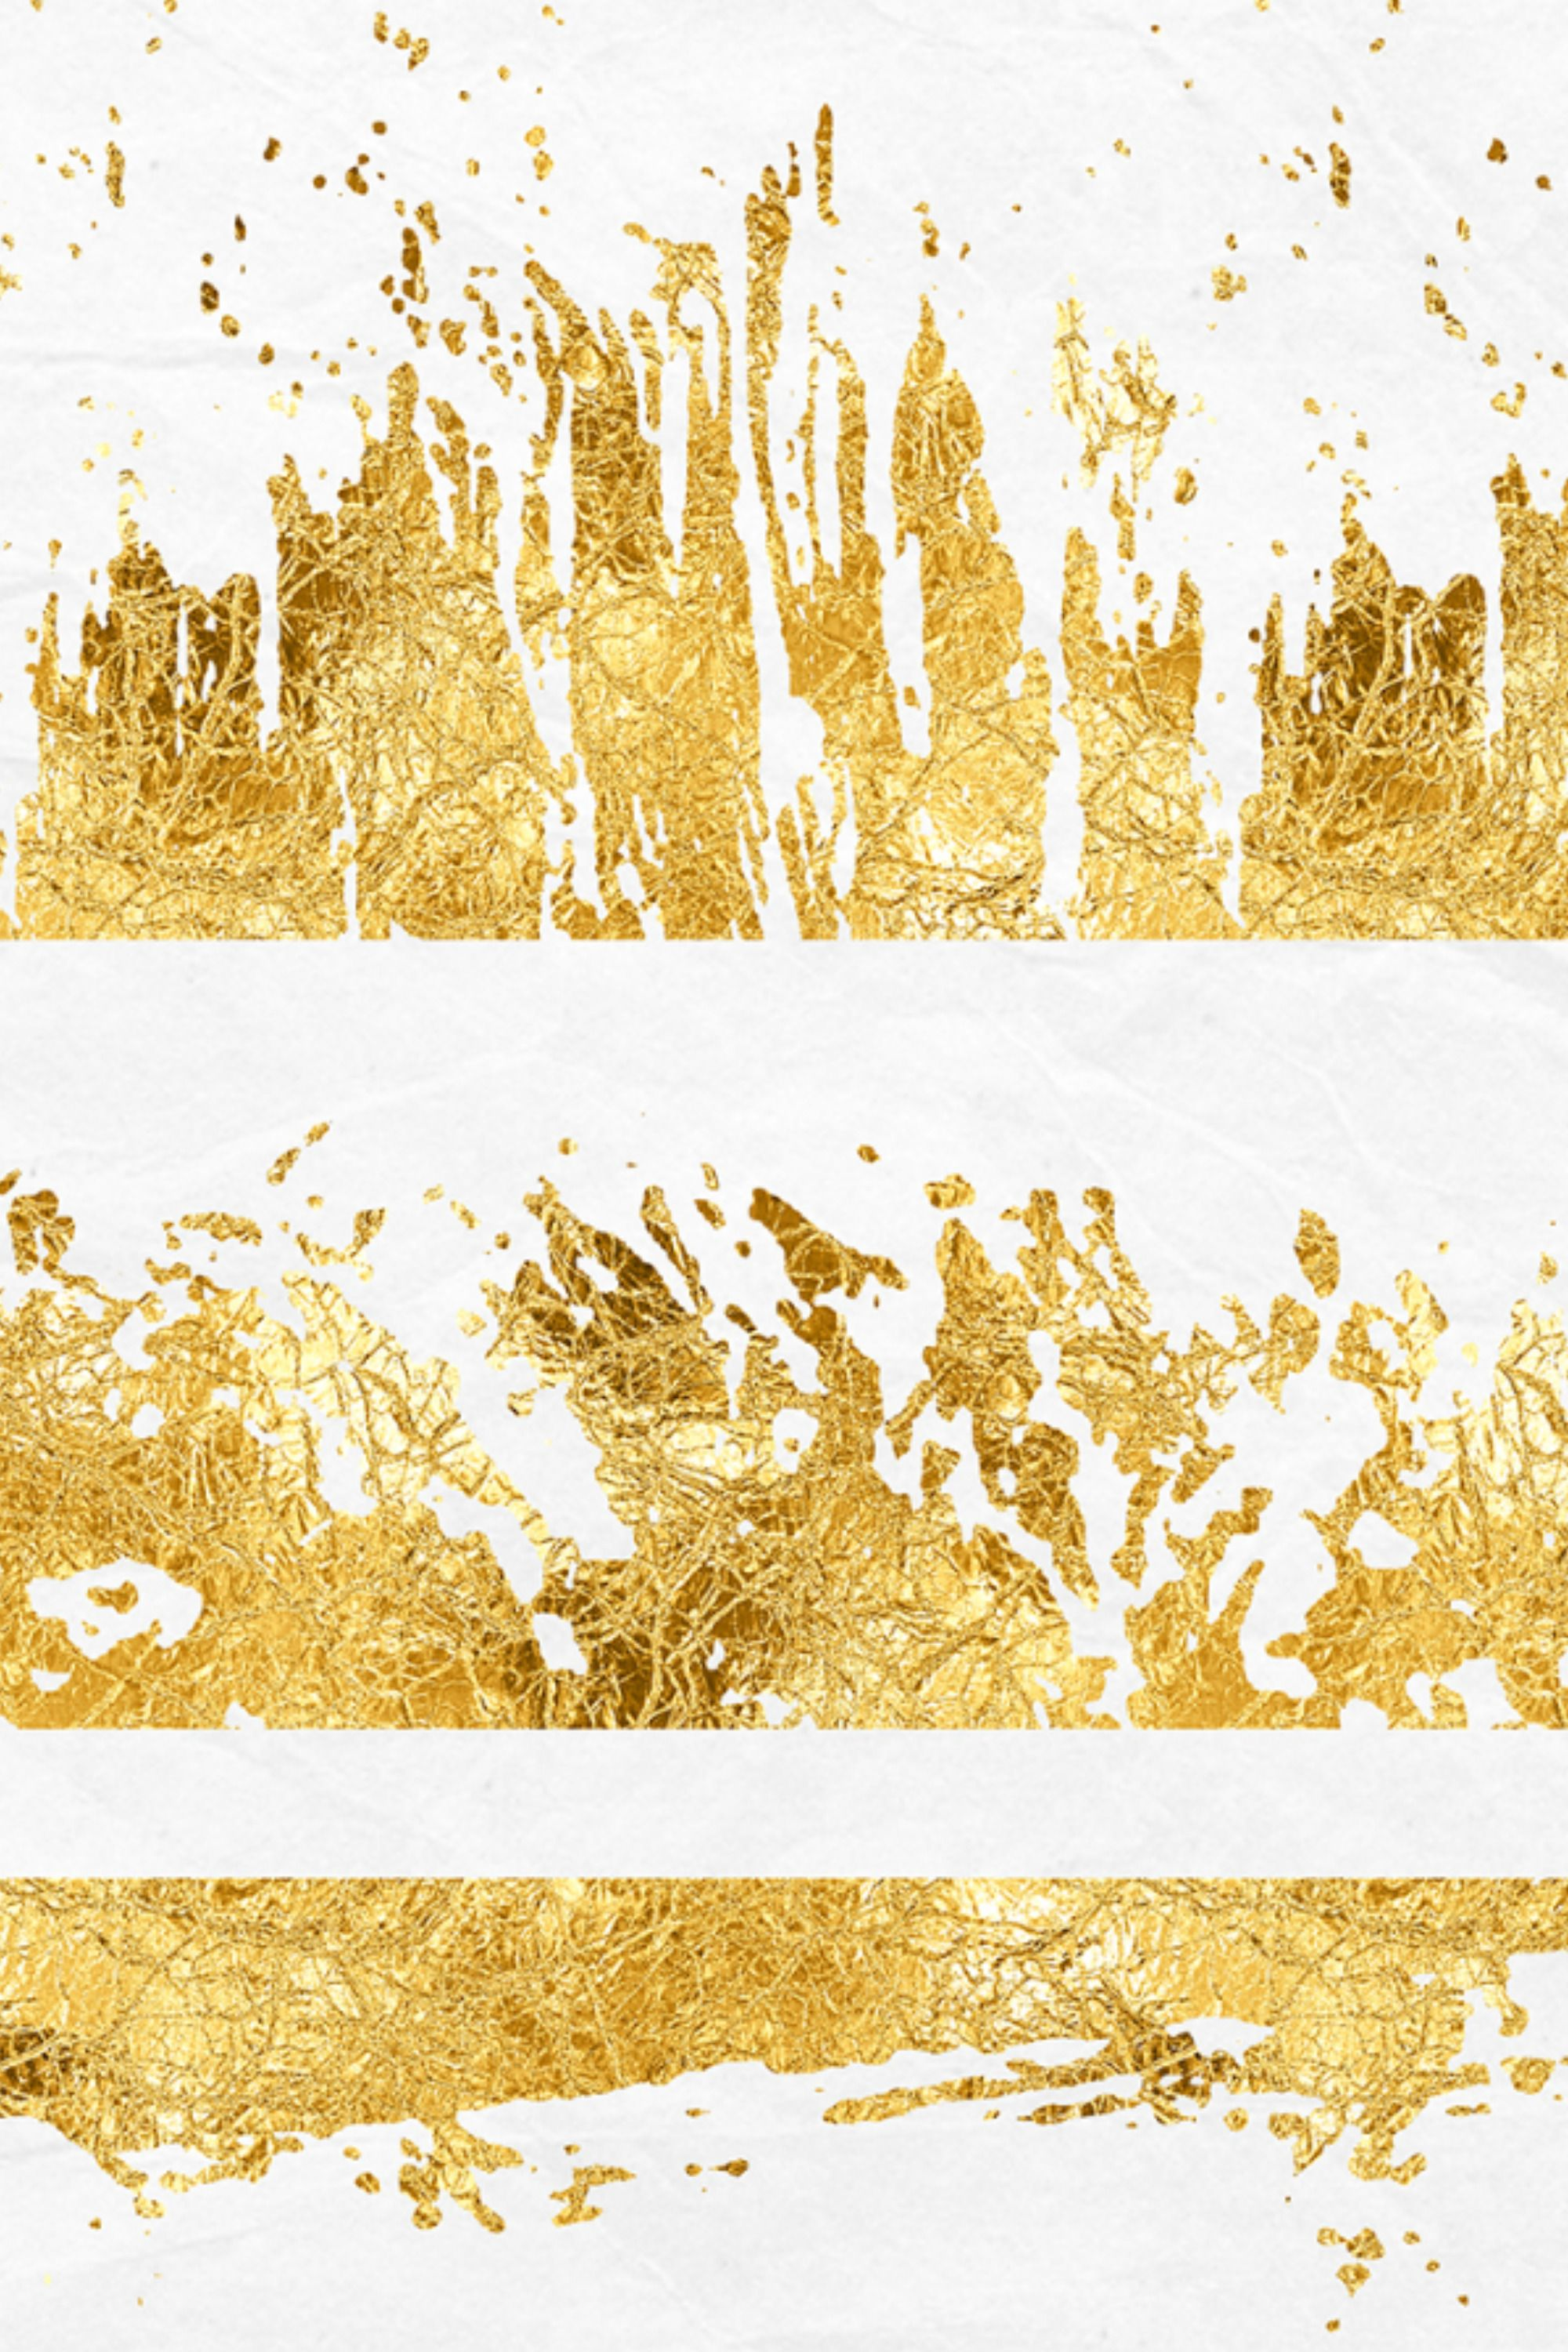 Gold Foil Flake Clipart Gold Borders Overlays Gold Foil Frames Gold Grunge Png Clipart Gold Leaf Art Gold Design Elemets Gold Clipart Gold Leaf Art Gold Clipart Gold Foil